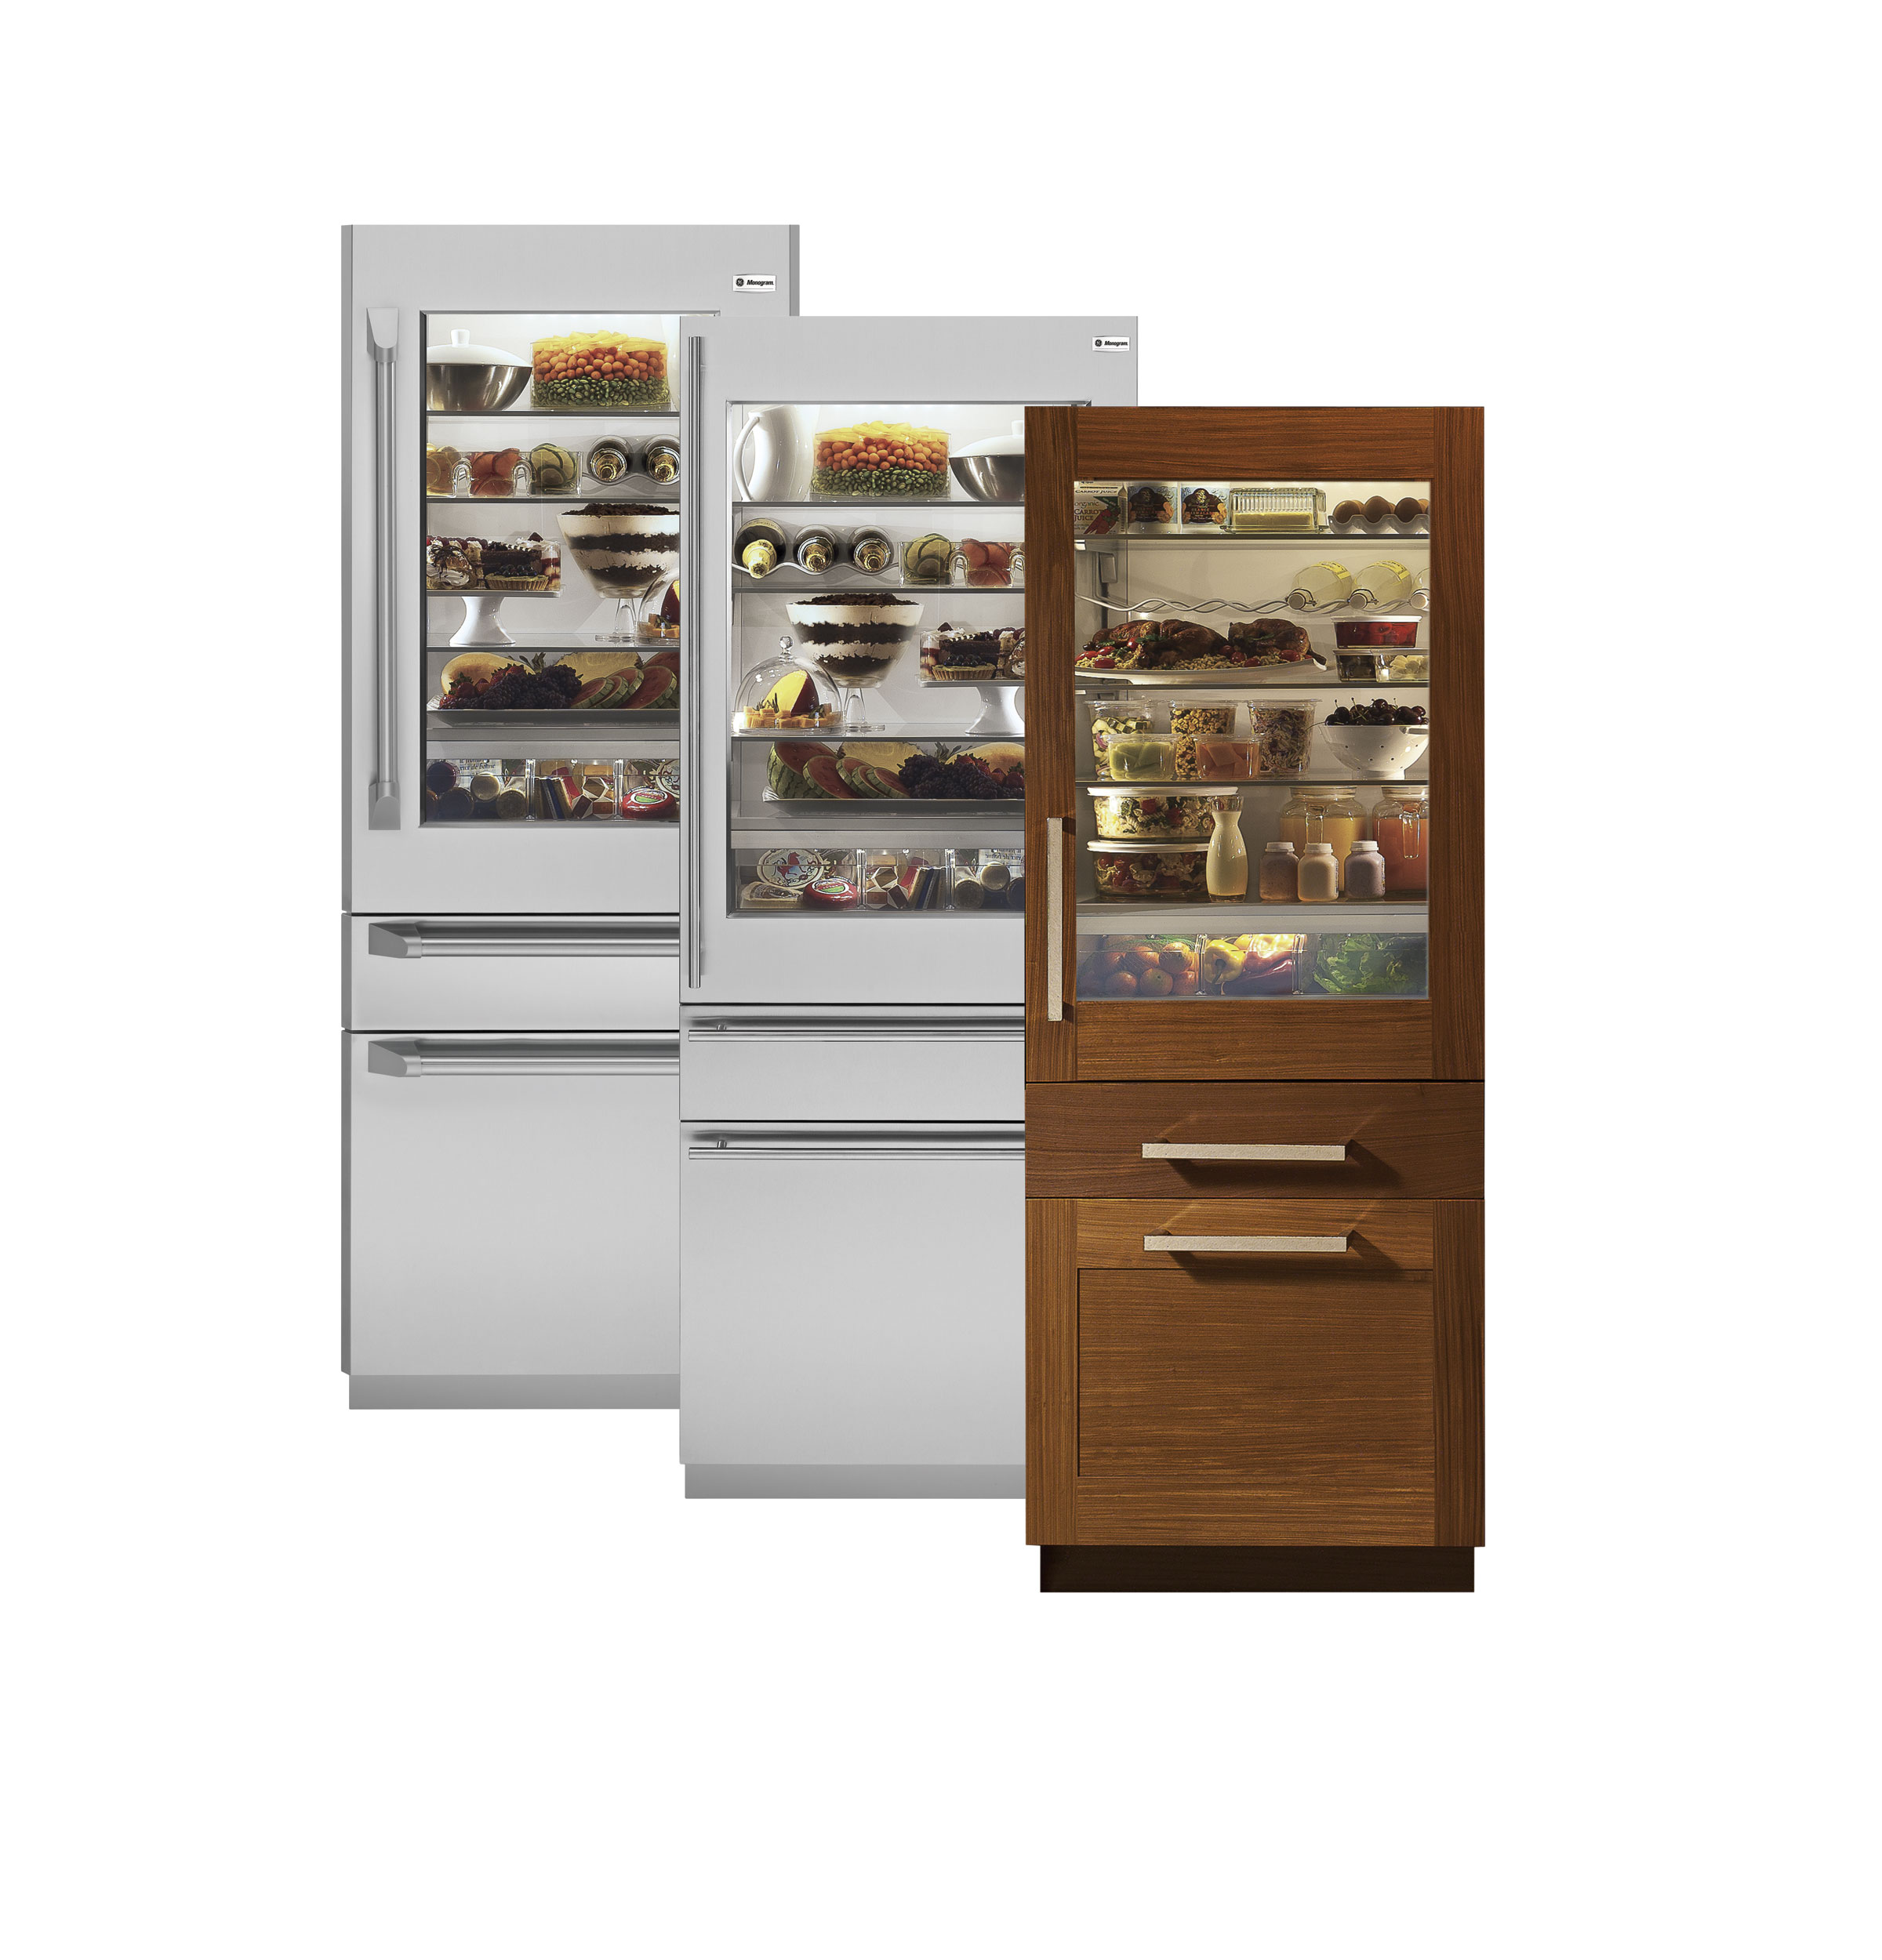 Ade Brown And White Glass Door Refrigerator Residential Design With Lower Storage Slim